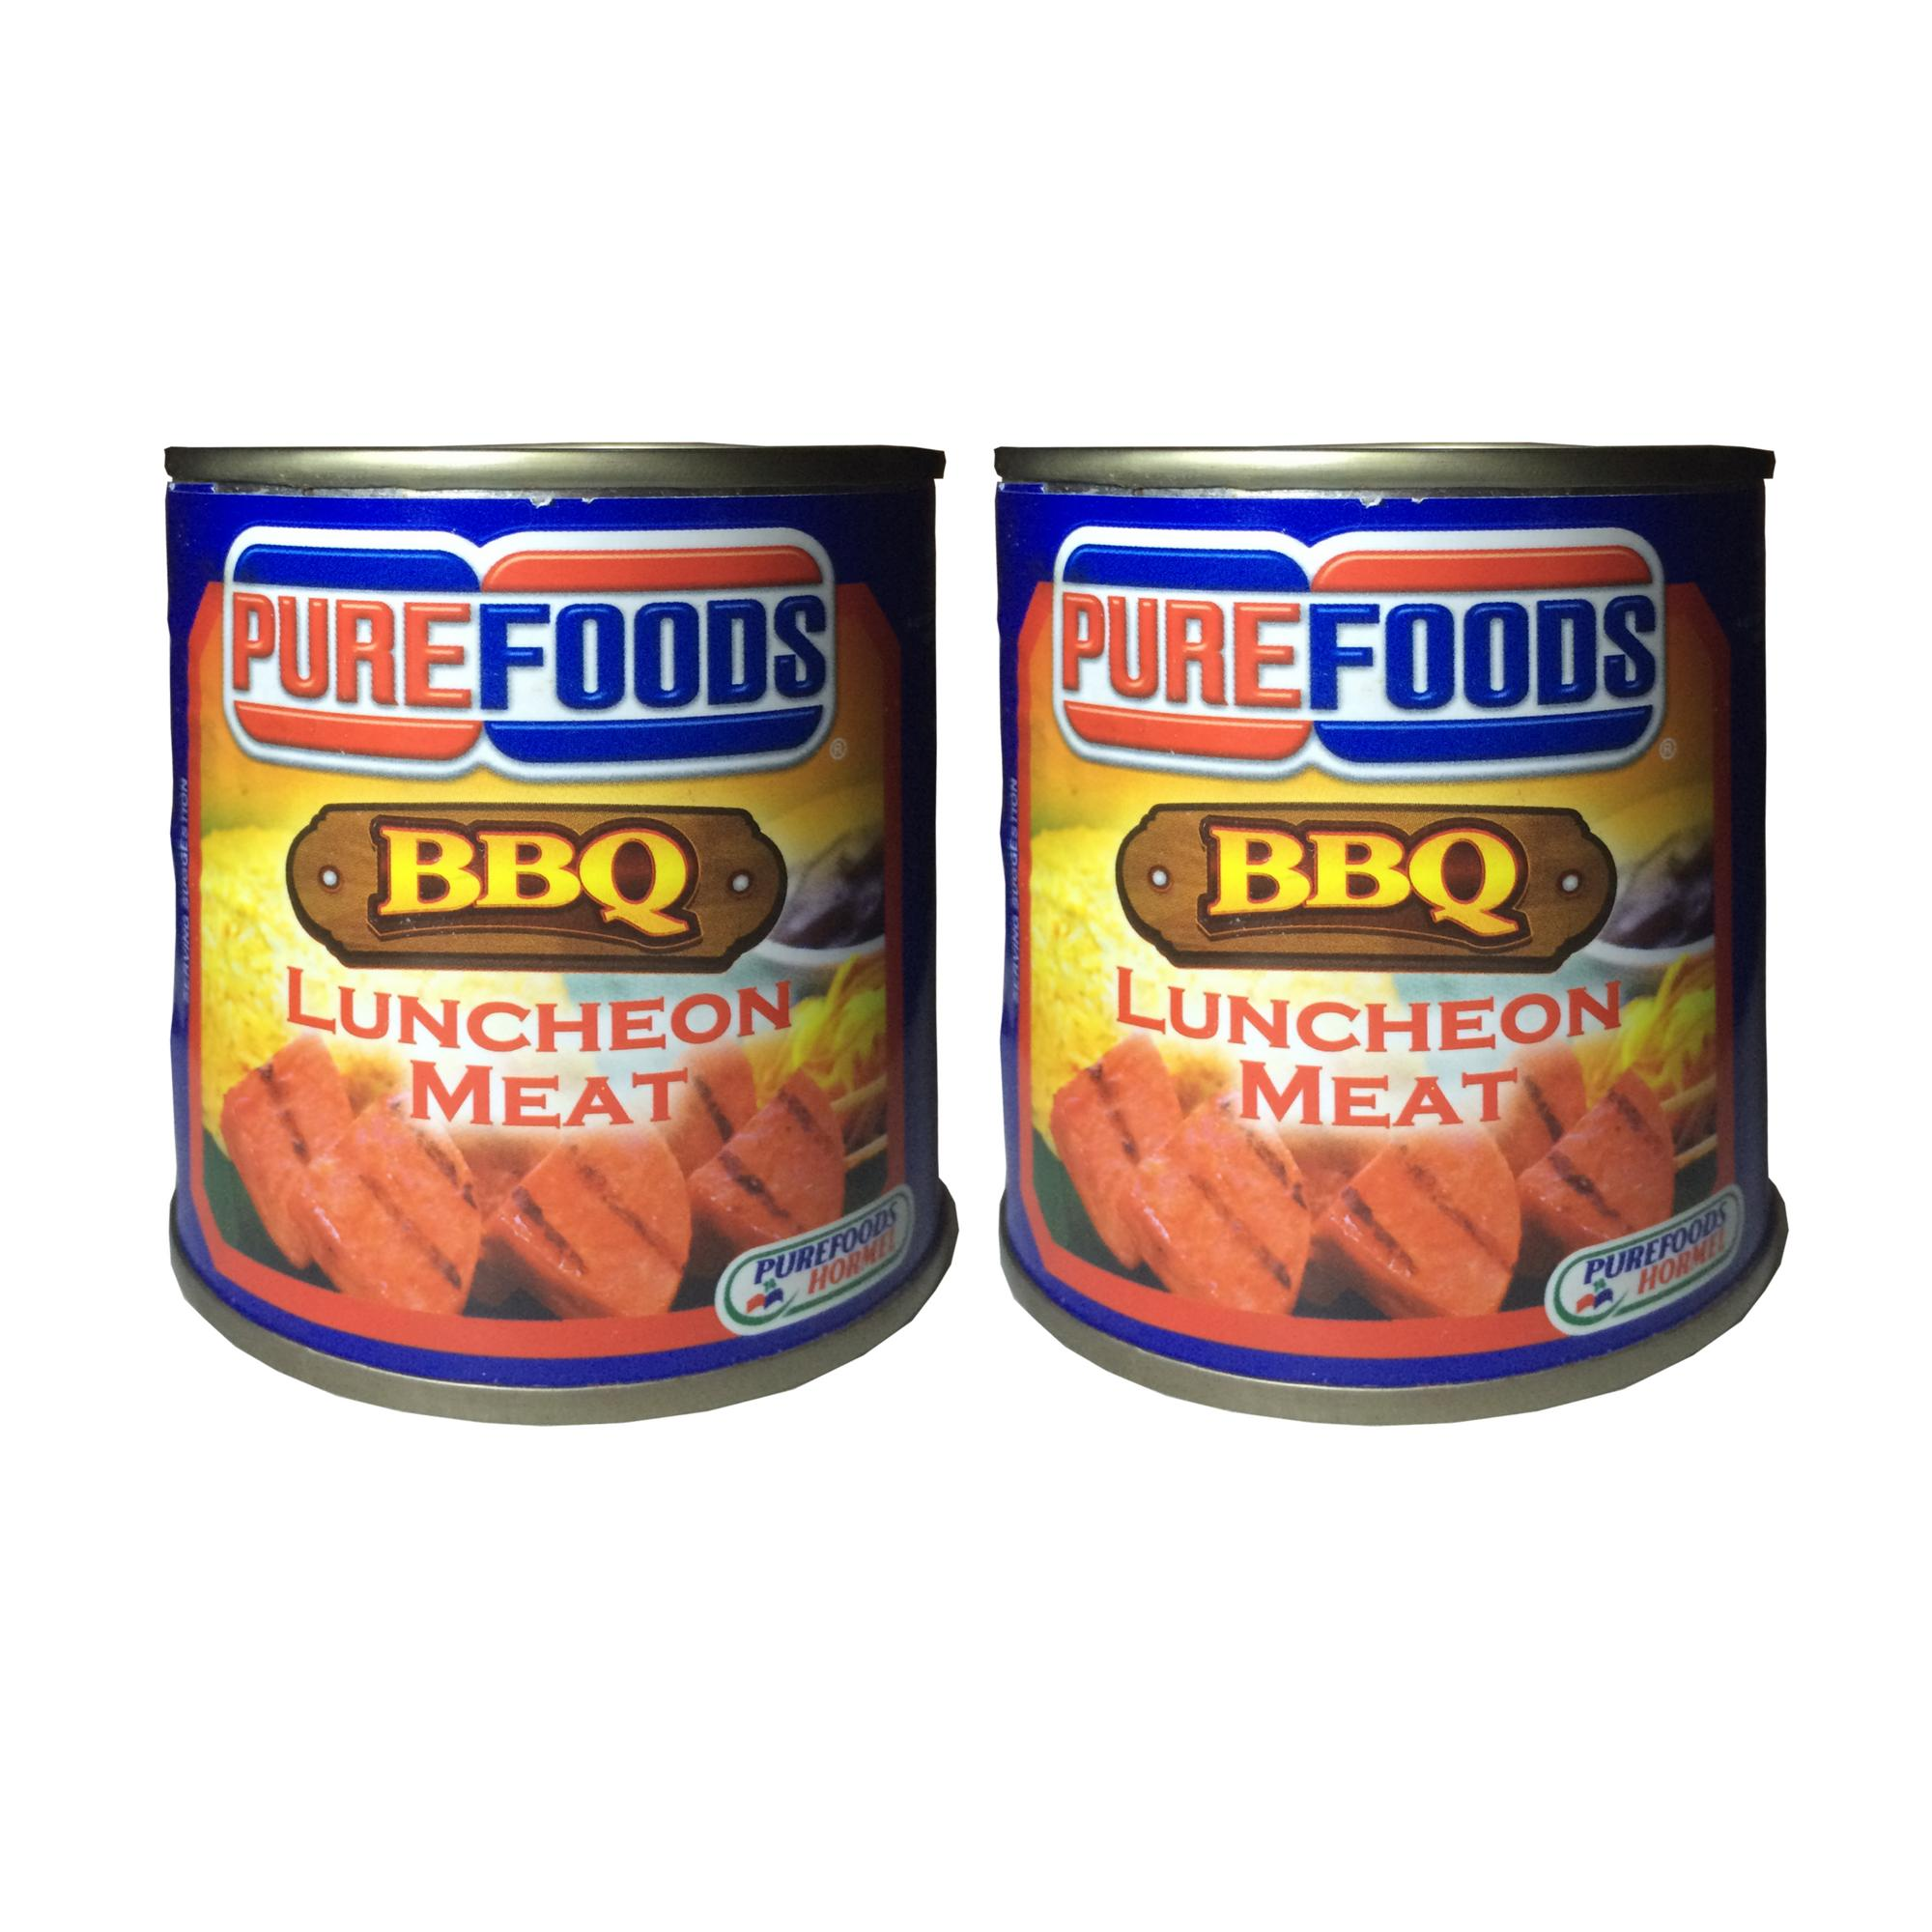 Buy Sell Cheapest Axa 460 Pcs Best Quality Product Deals Wire Harness Insulation Purefoods Bbq Luncheon Meat 230 Grams 2 With Free Romana Peanut Brittle